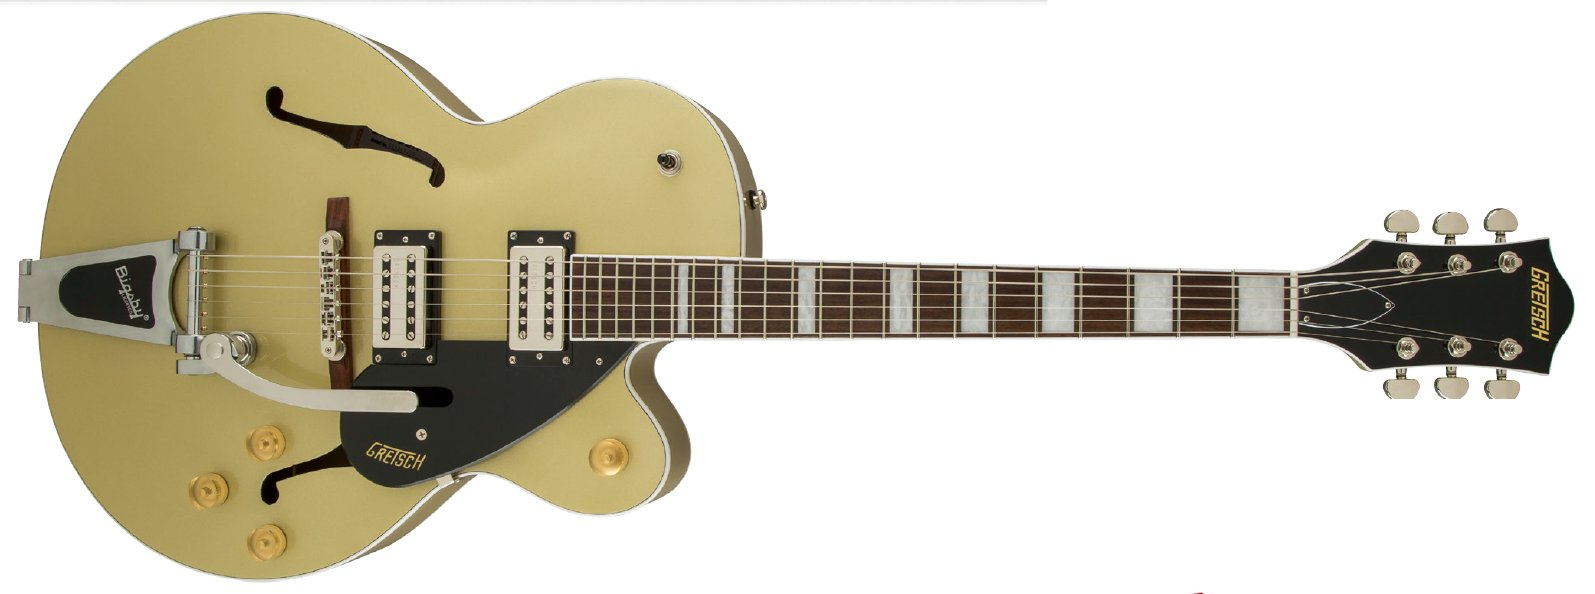 Gretsch Guitars G2420T Streamliner Series Single Cutaway Hollow Body HH Electric Guitar with Bigsby G2420T